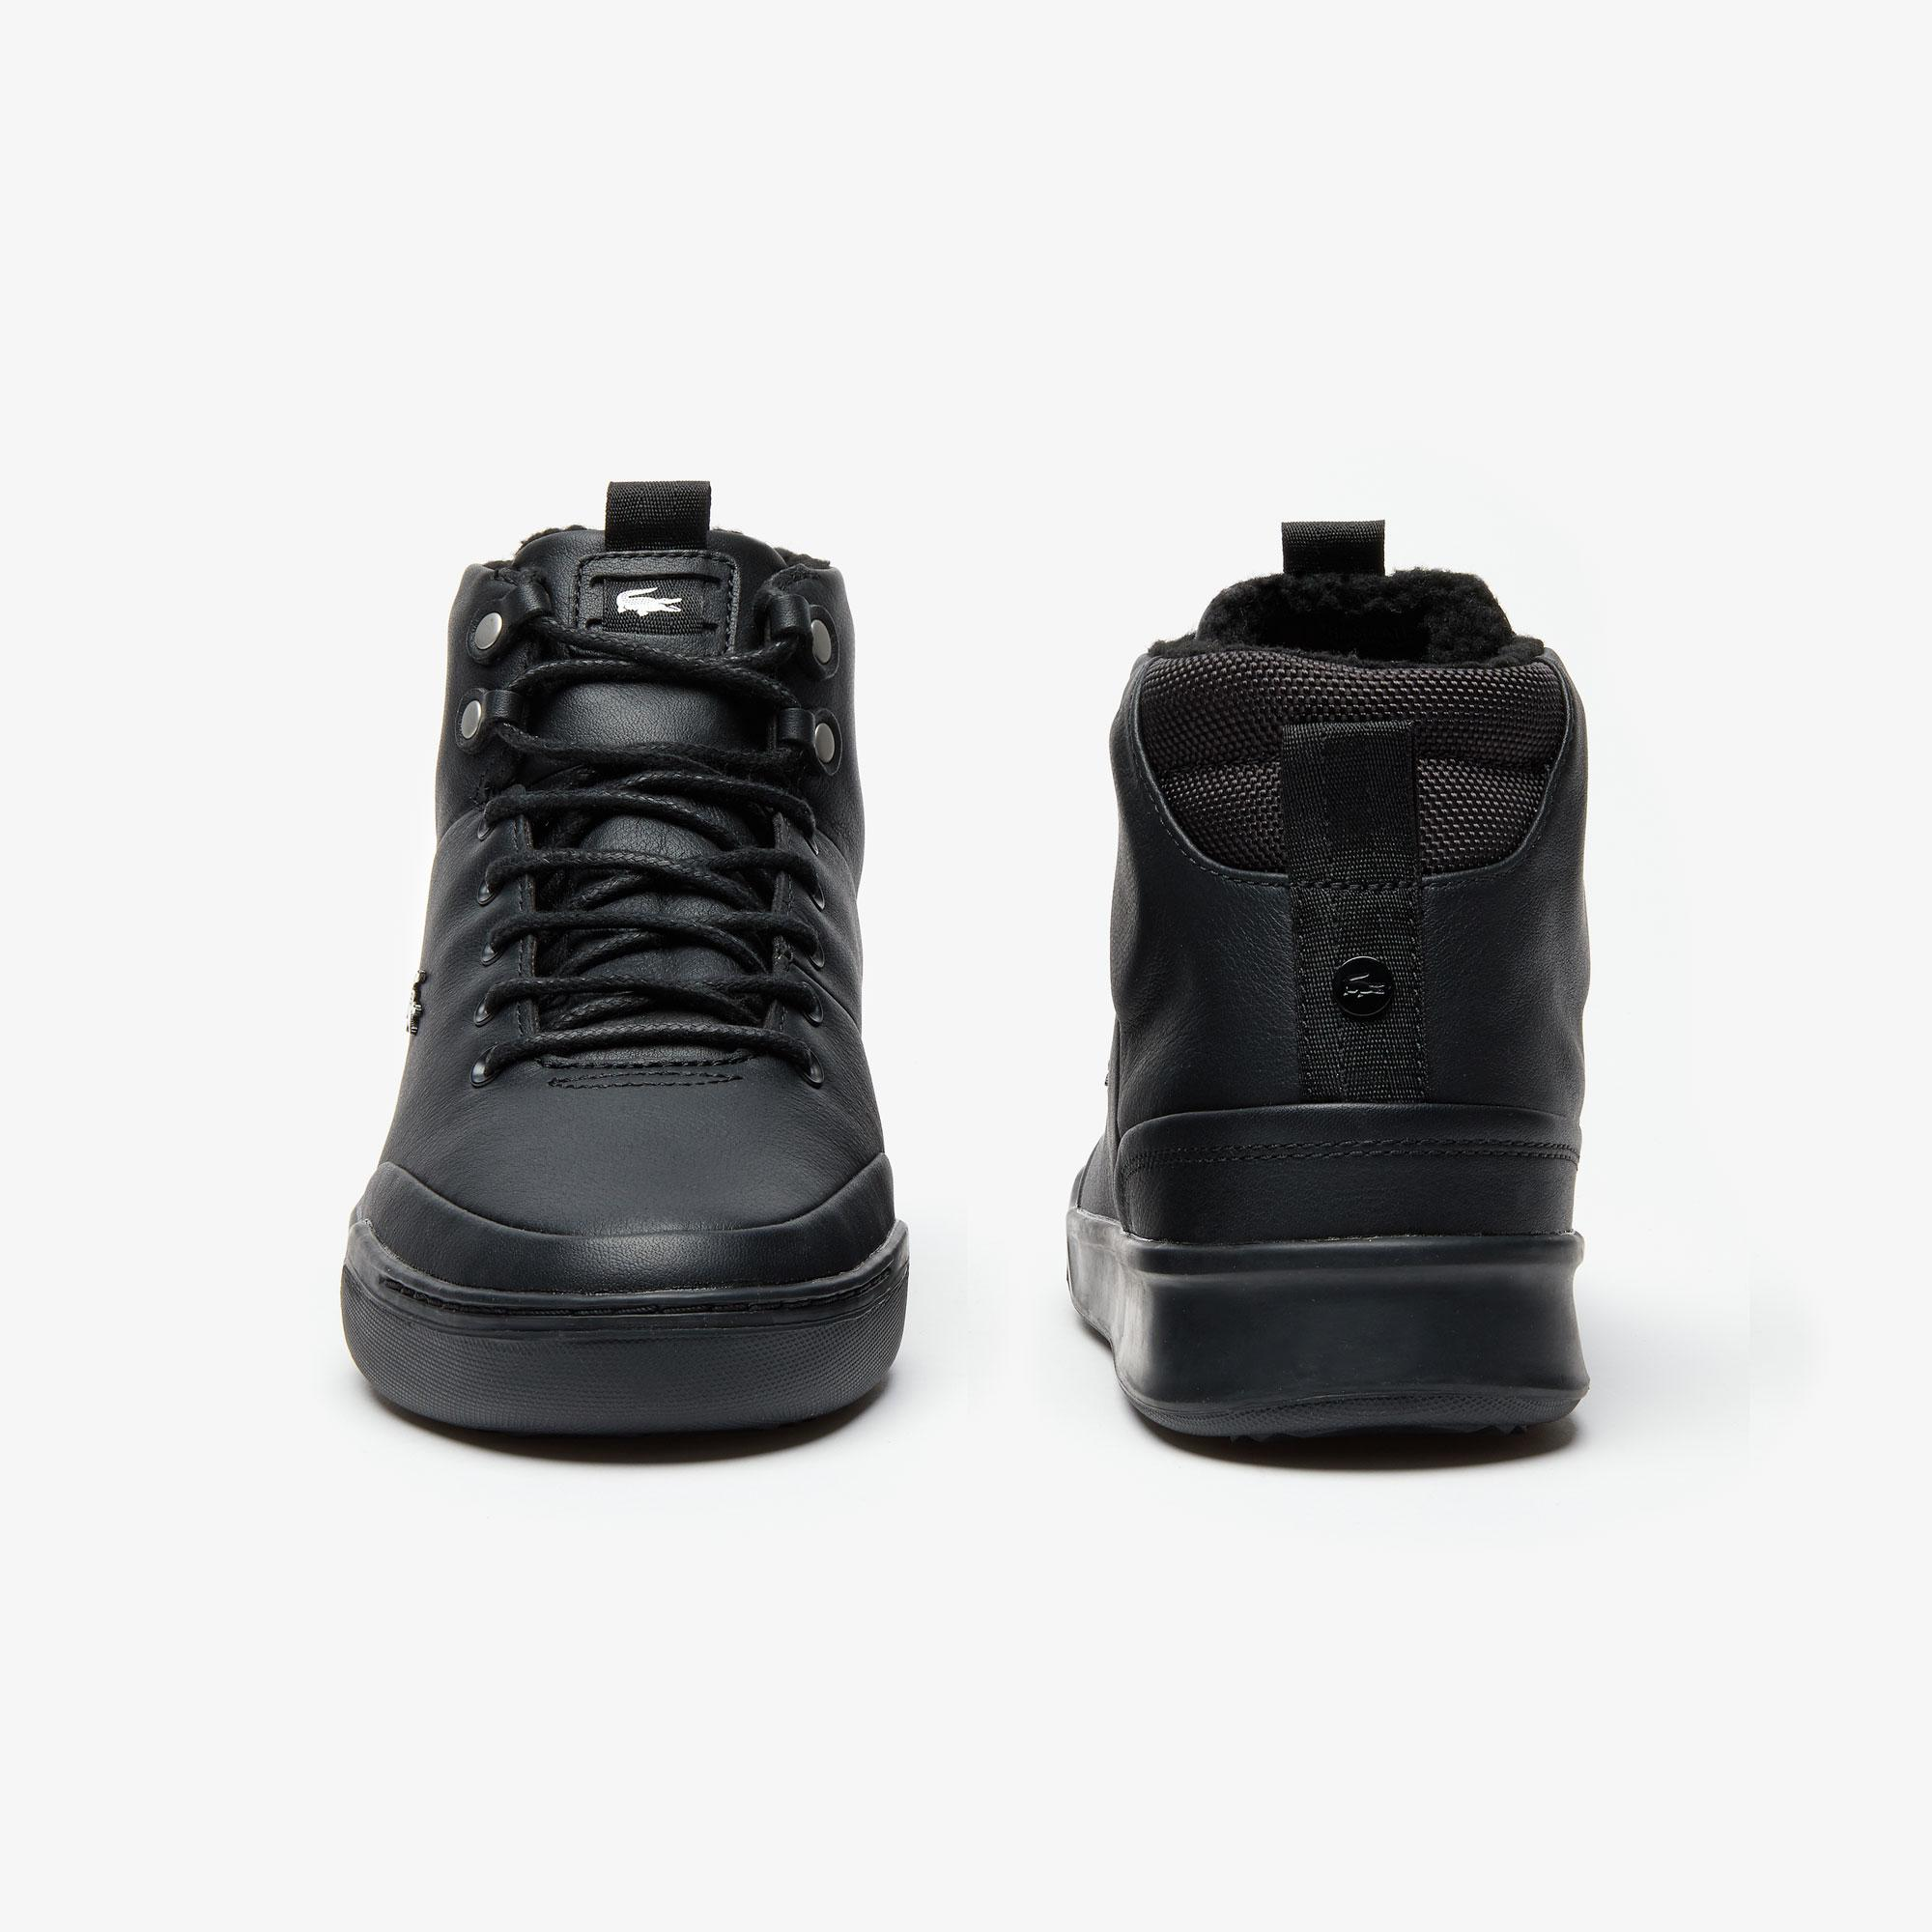 Lacoste Explorateur Thermo 419 1 Męskie Boots